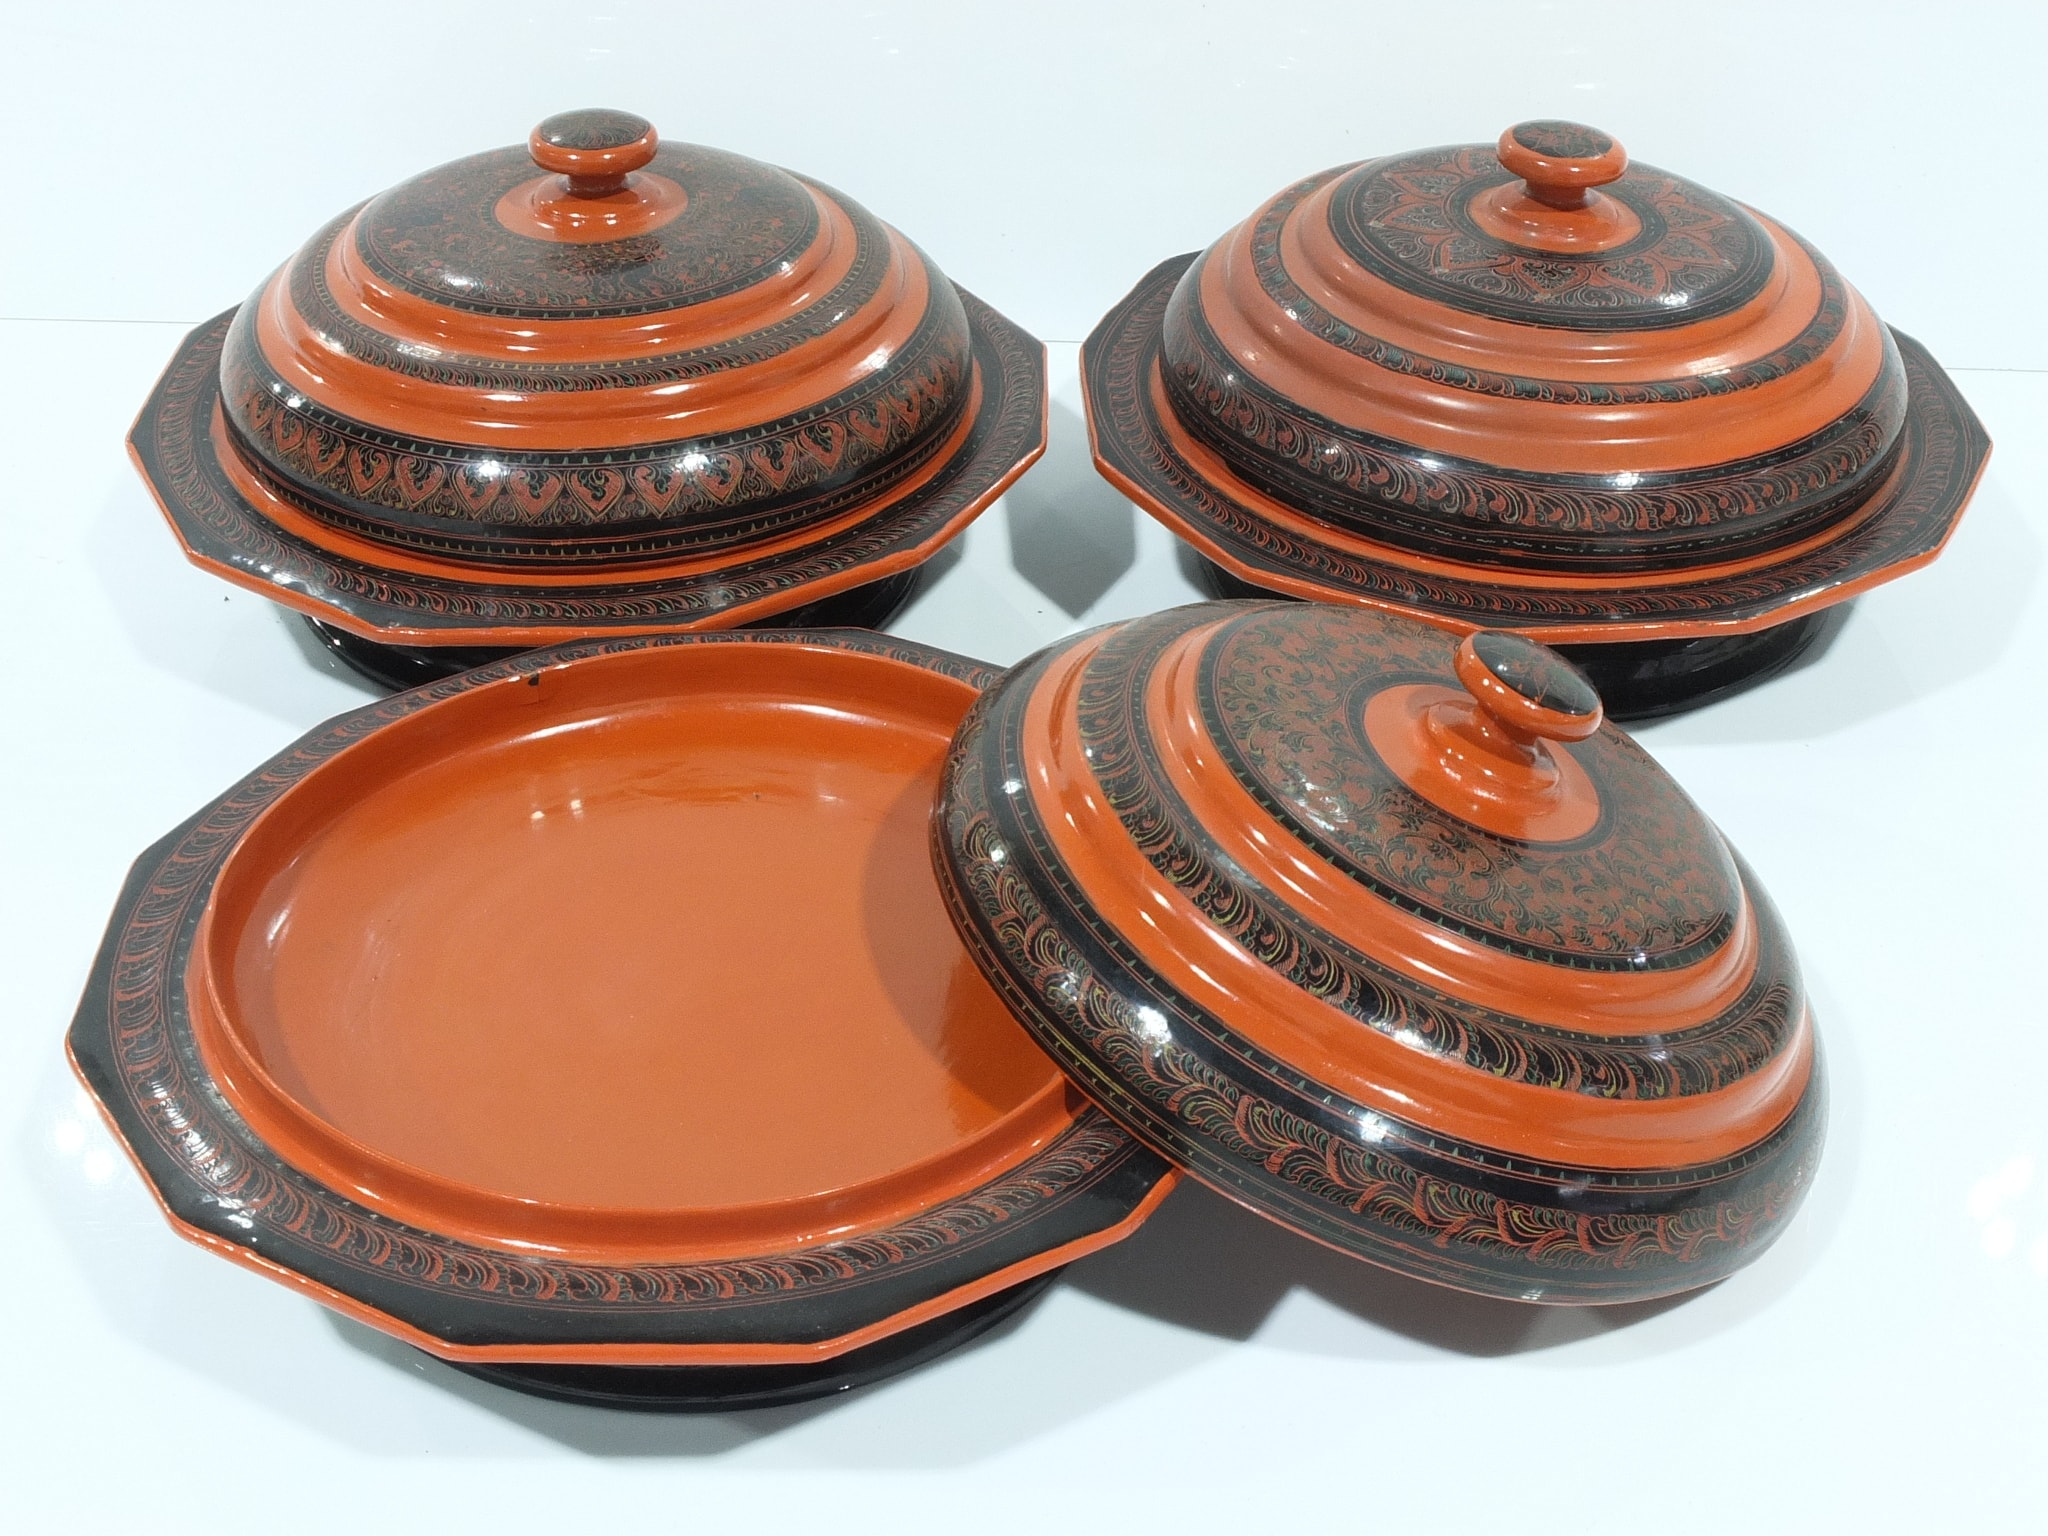 'Set of 6 Burmese Lacquer Covered Dishes 20th Century'